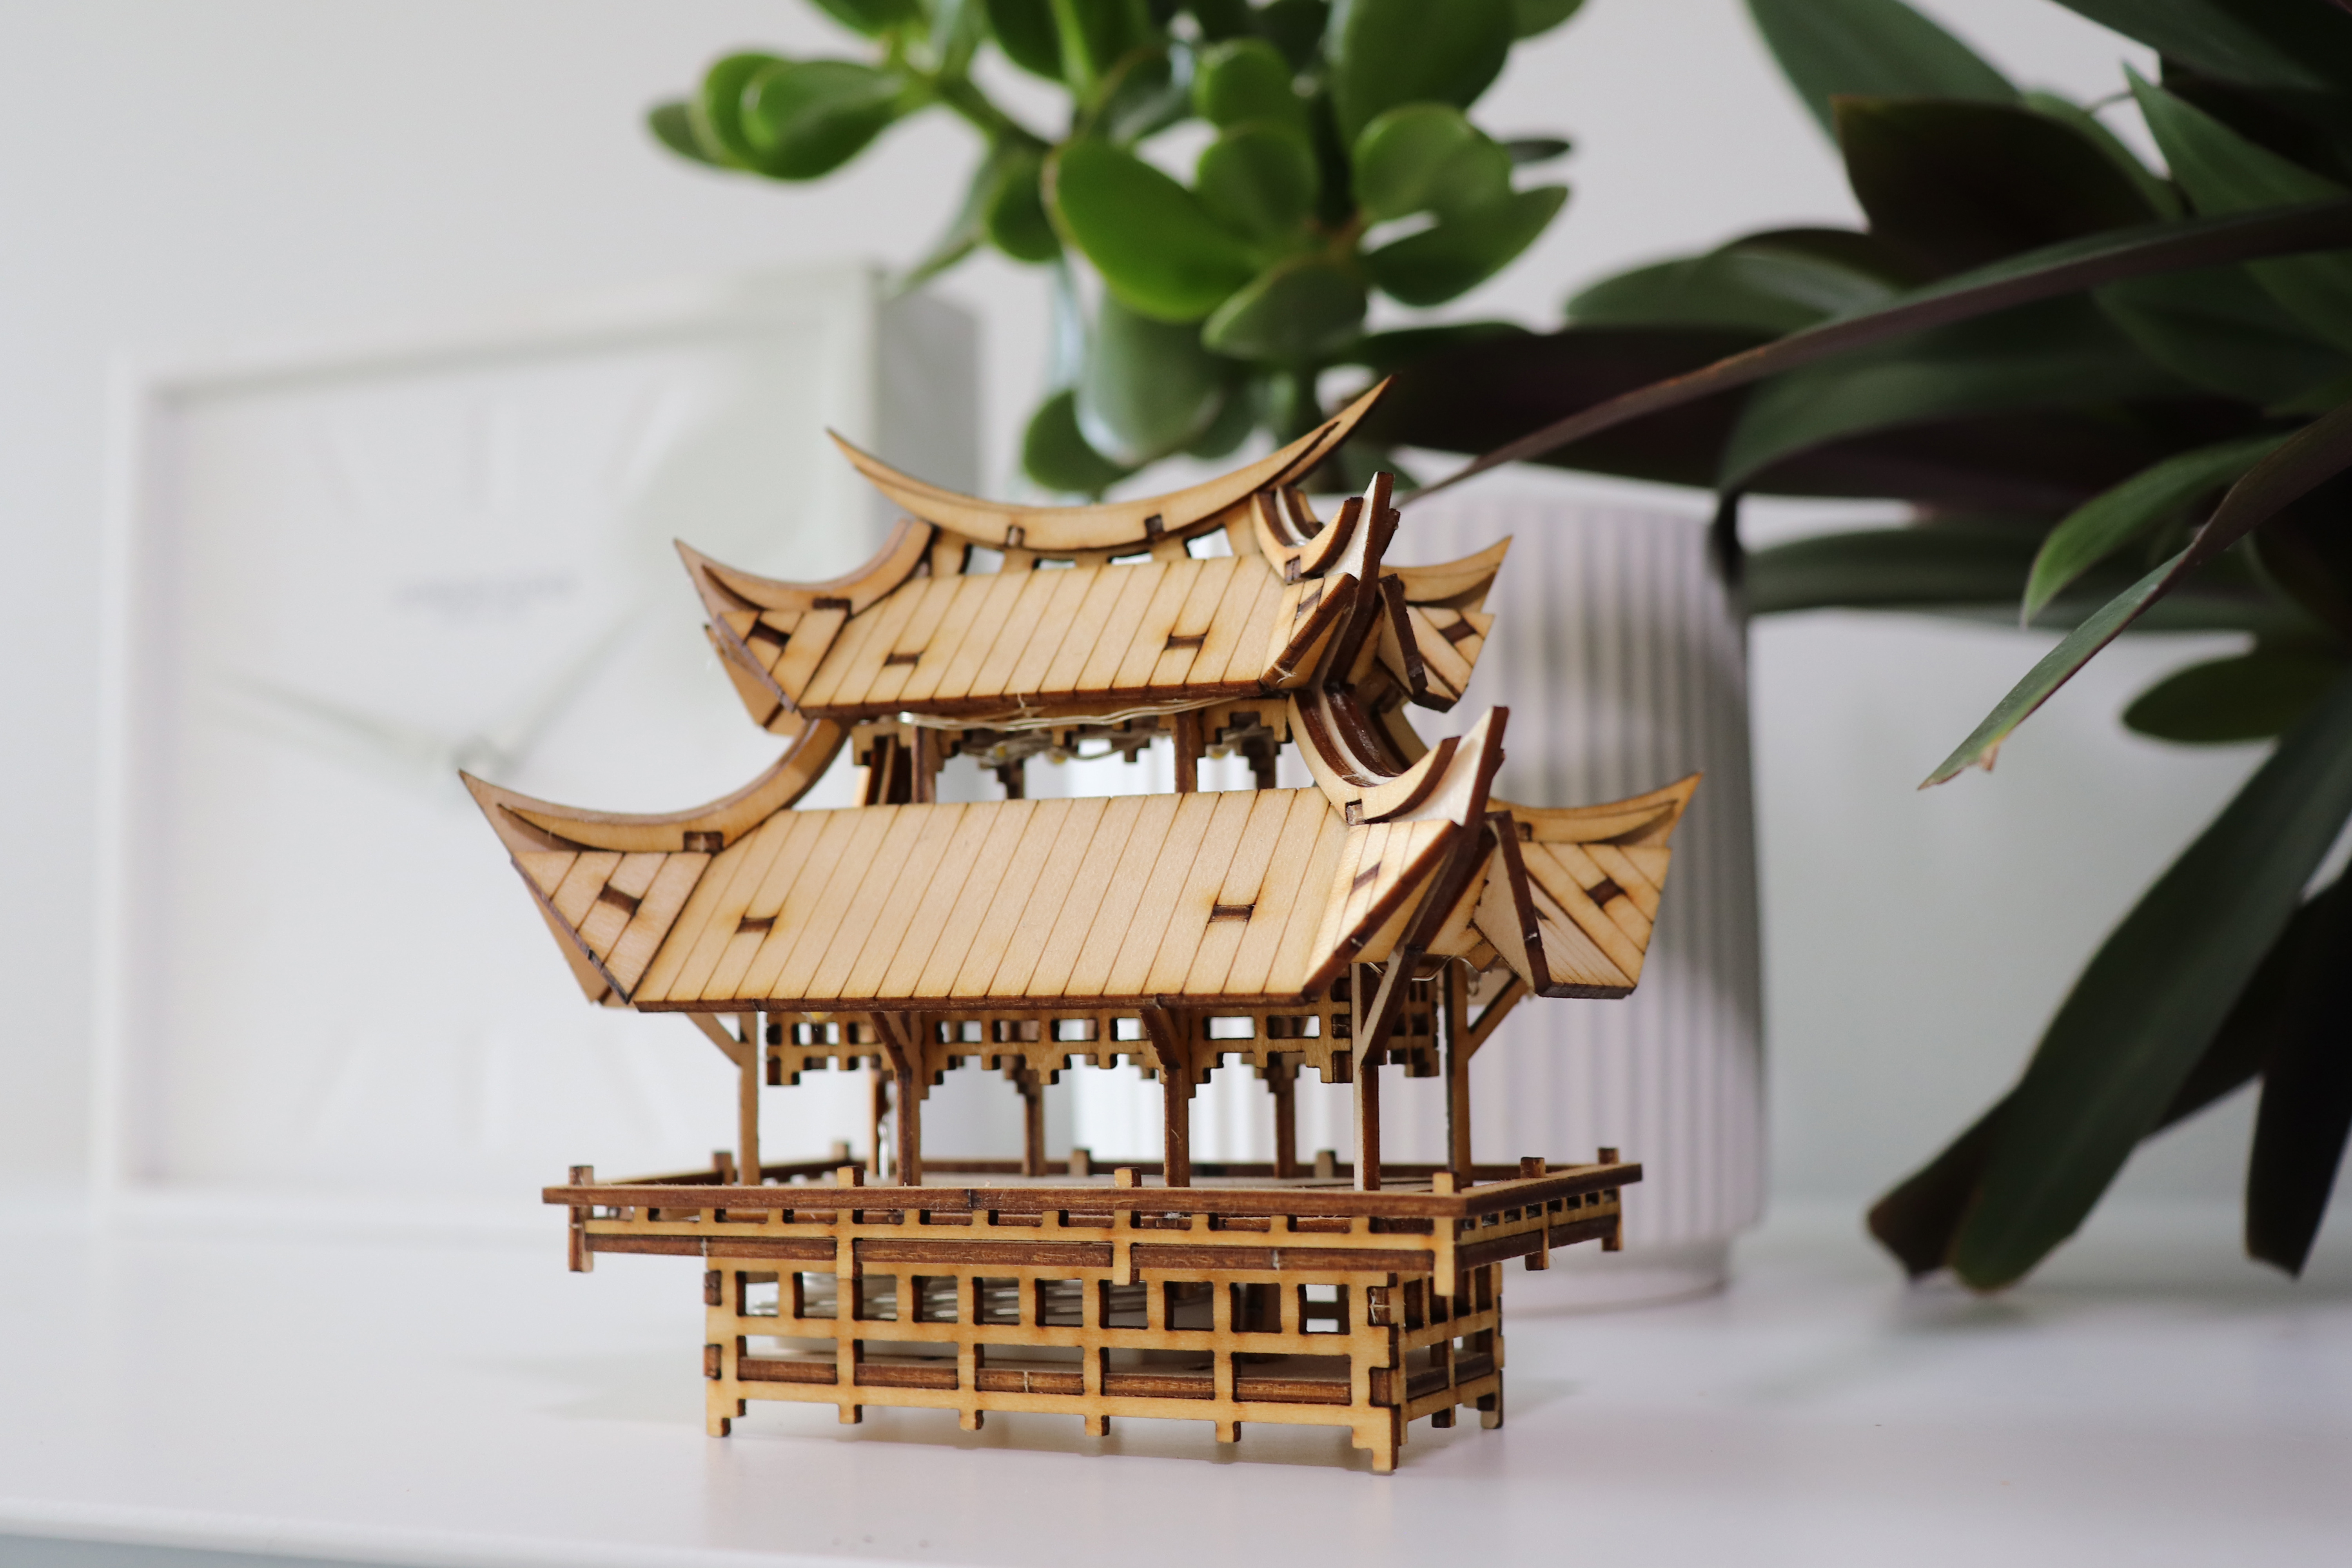 tiny treehouses diy model kit made from plyco laser plywood